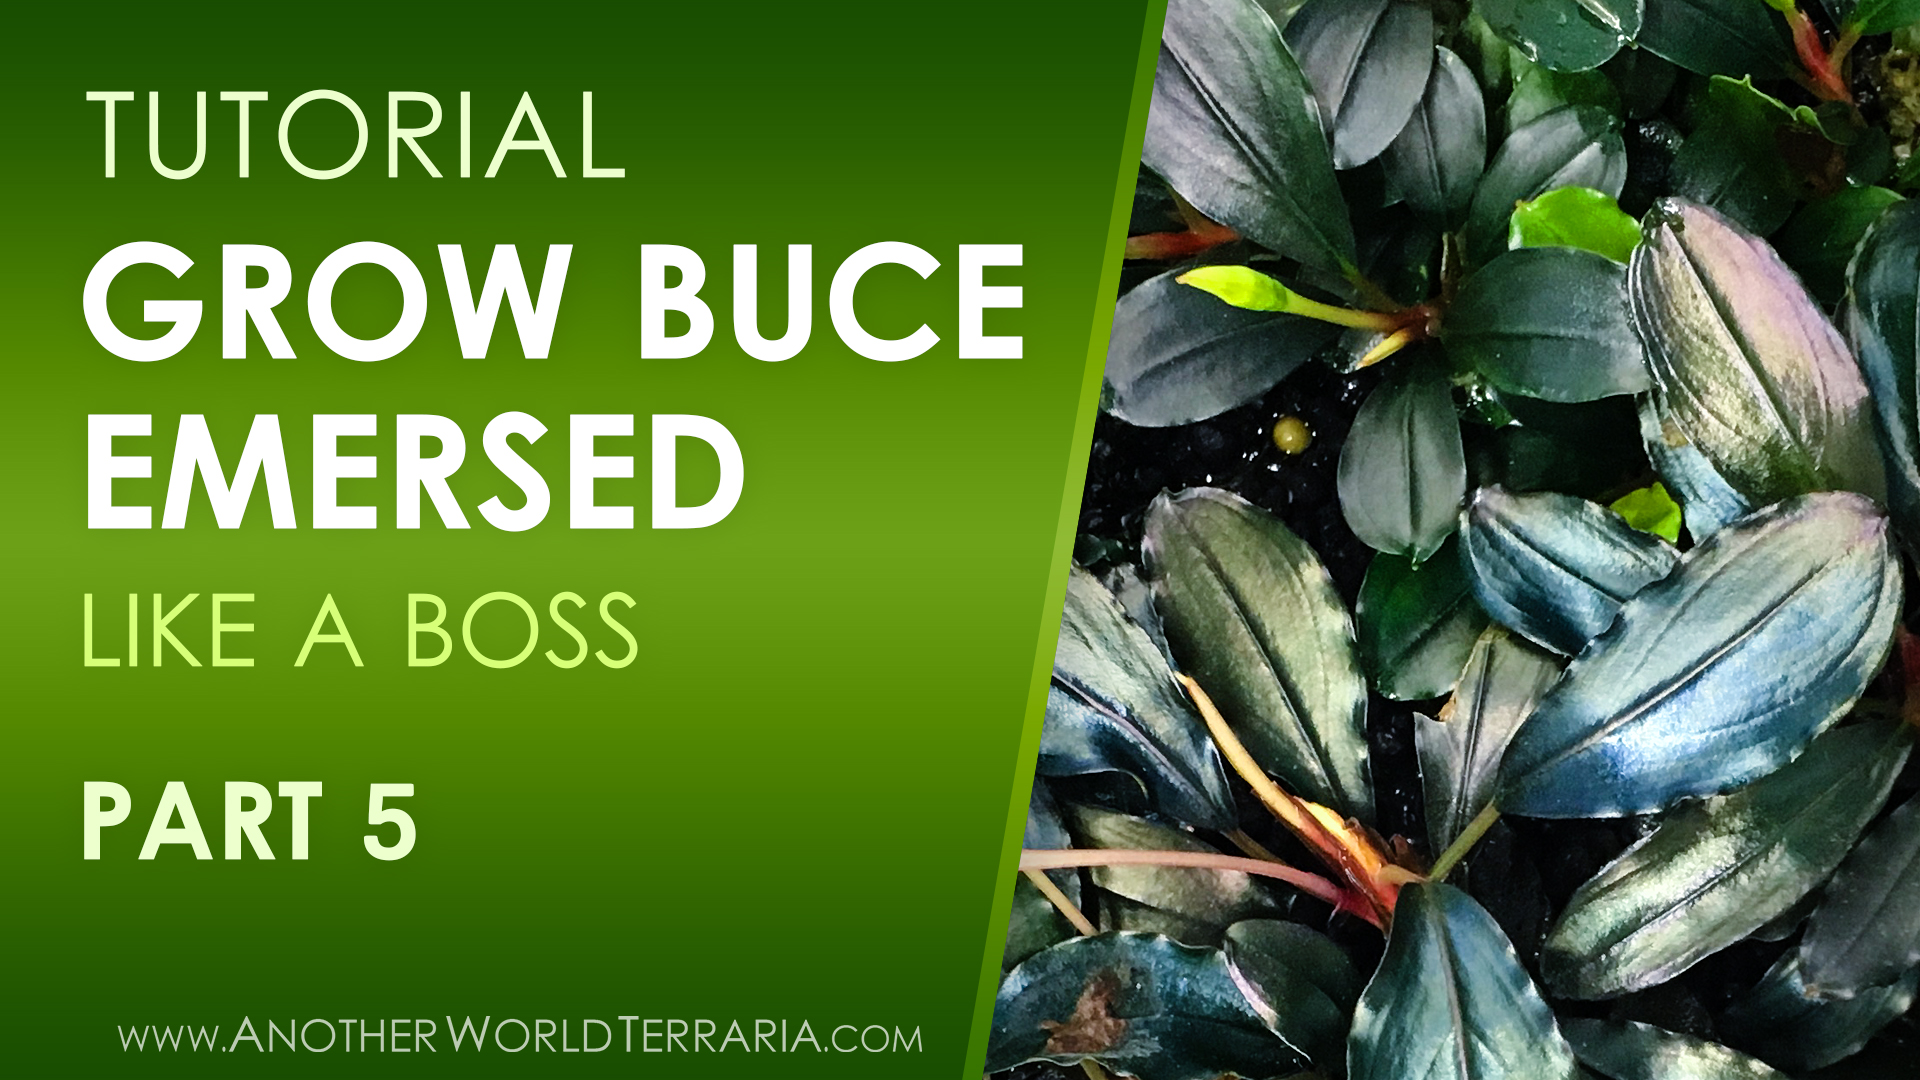 Grow Buce Emersed Like a Boss - Part 5